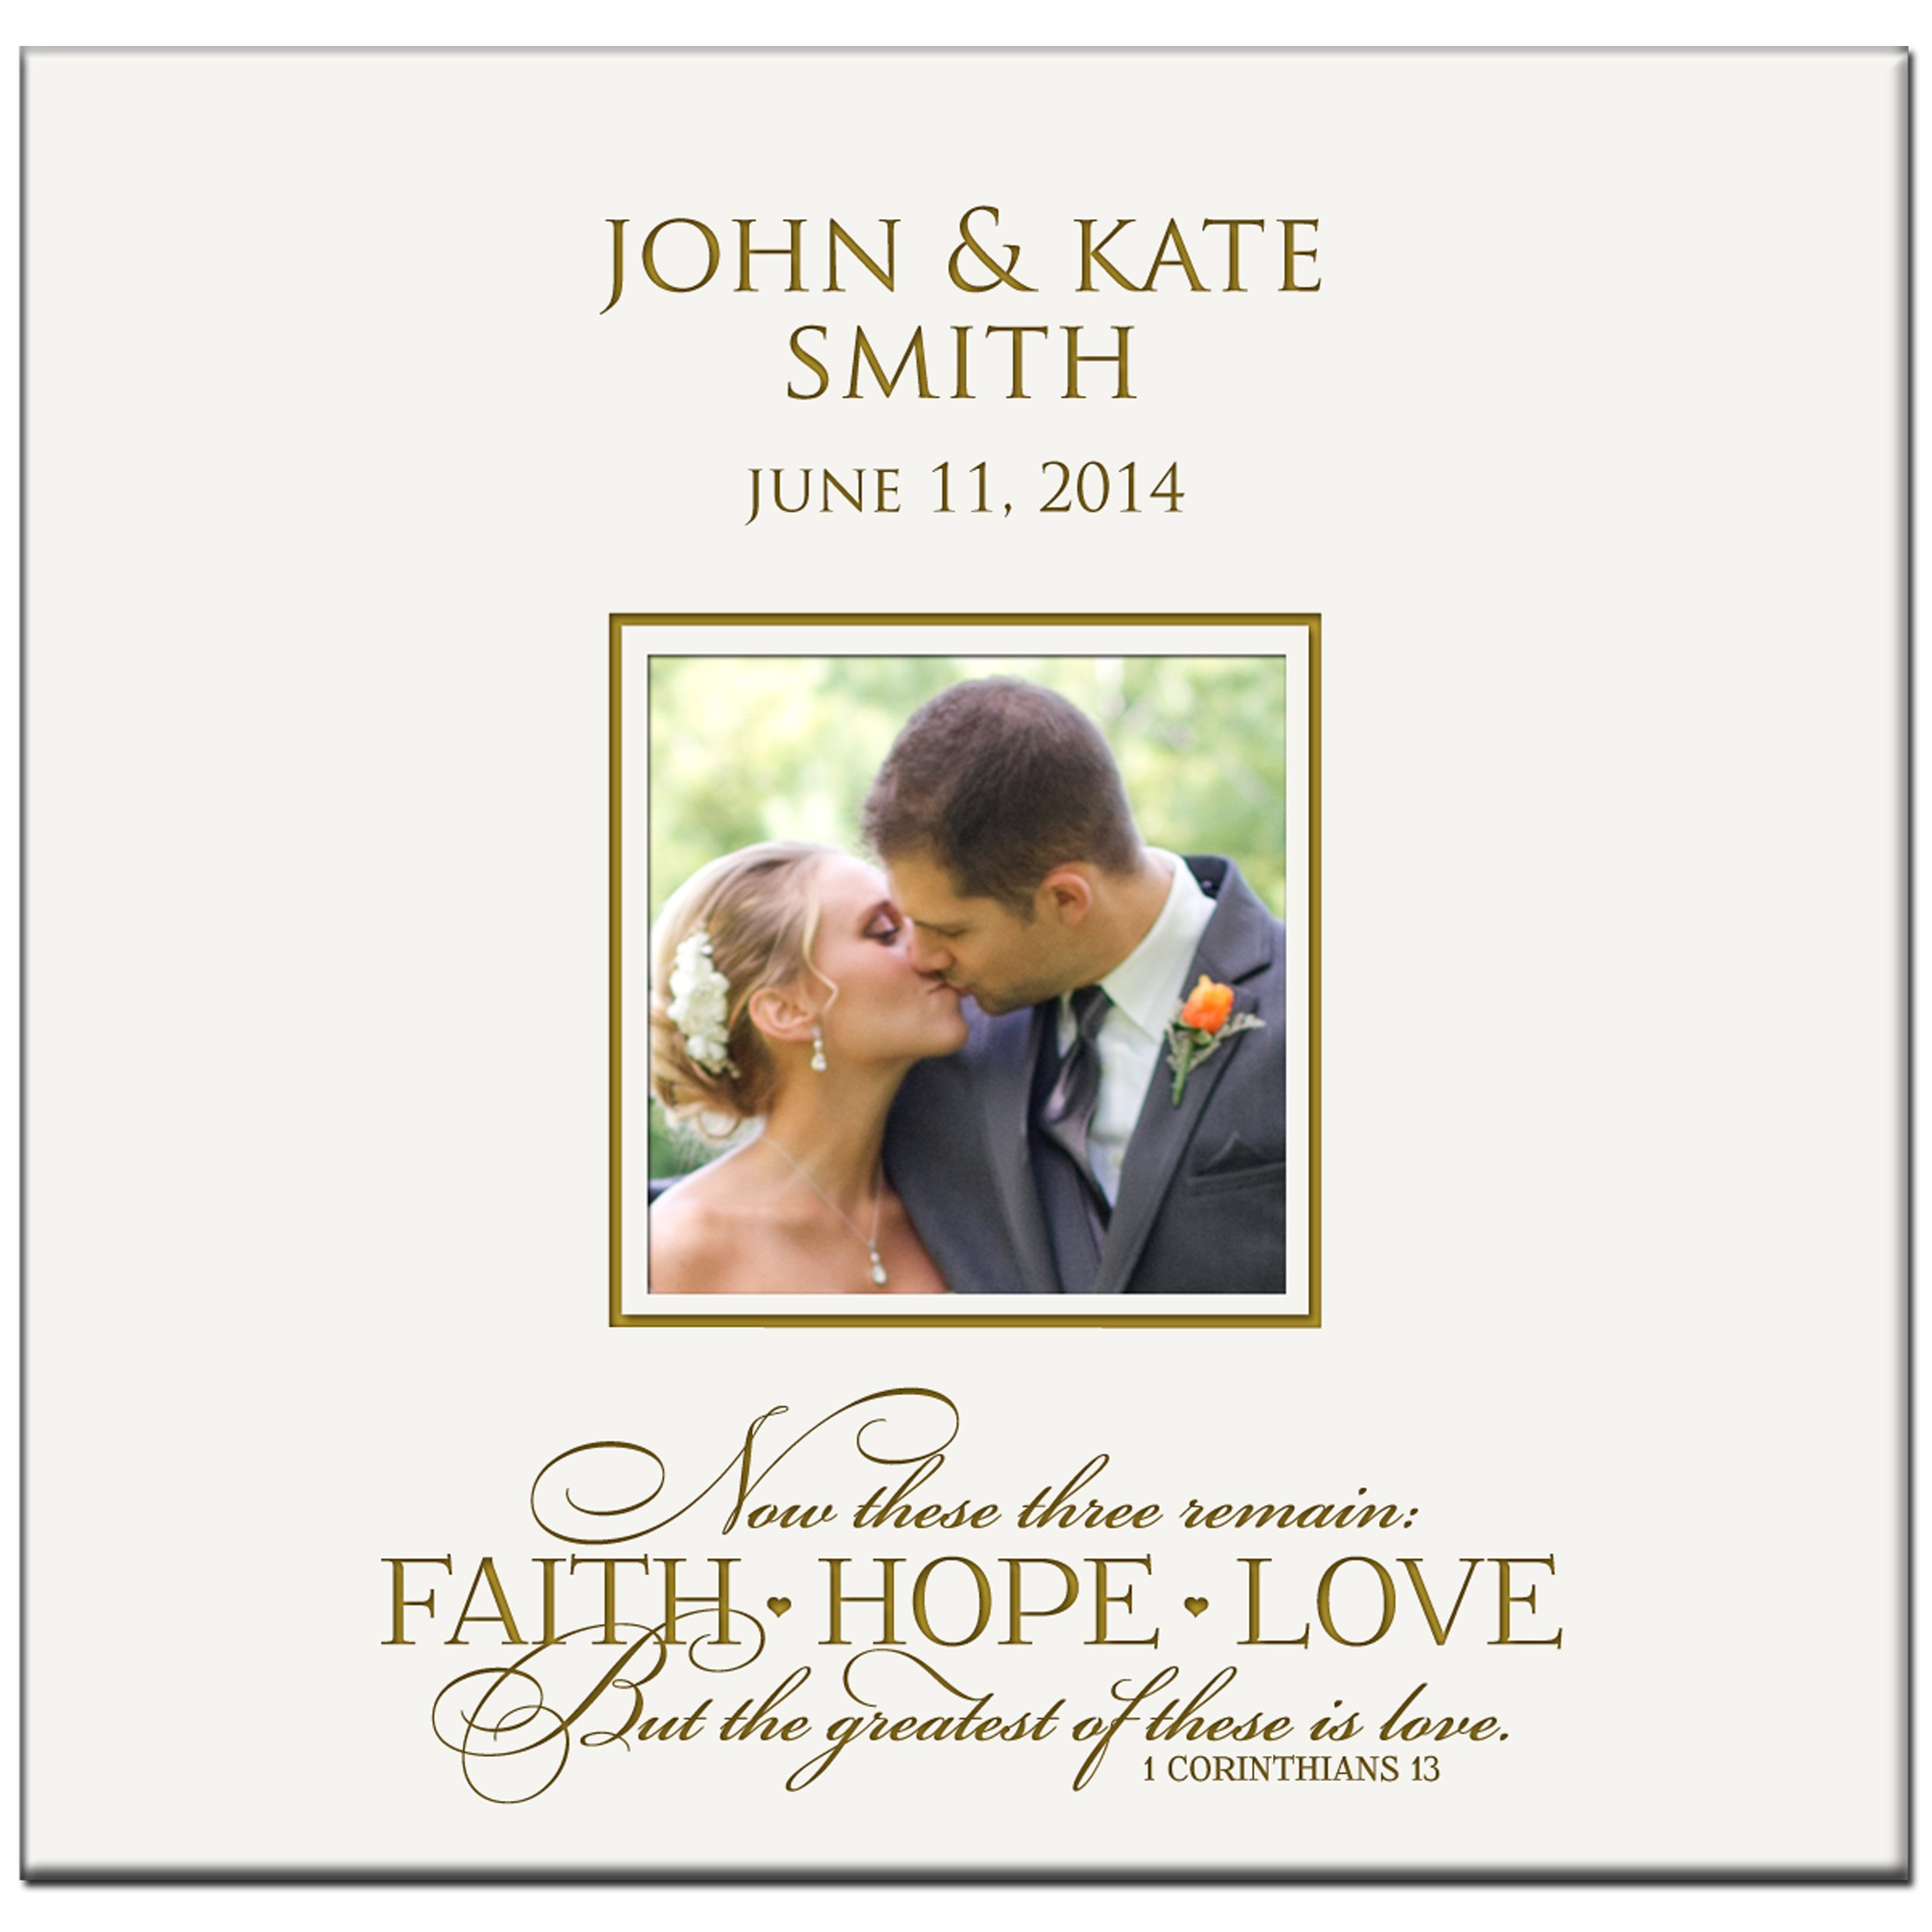 Personalized Wedding Anniversary Photo Album Now These Three Remain Faith Hope Love but the Greatest of These Is Love 1 Corinthians 13:13 Custom Engraved Holds 200 4x6 Photos Wedding Gift